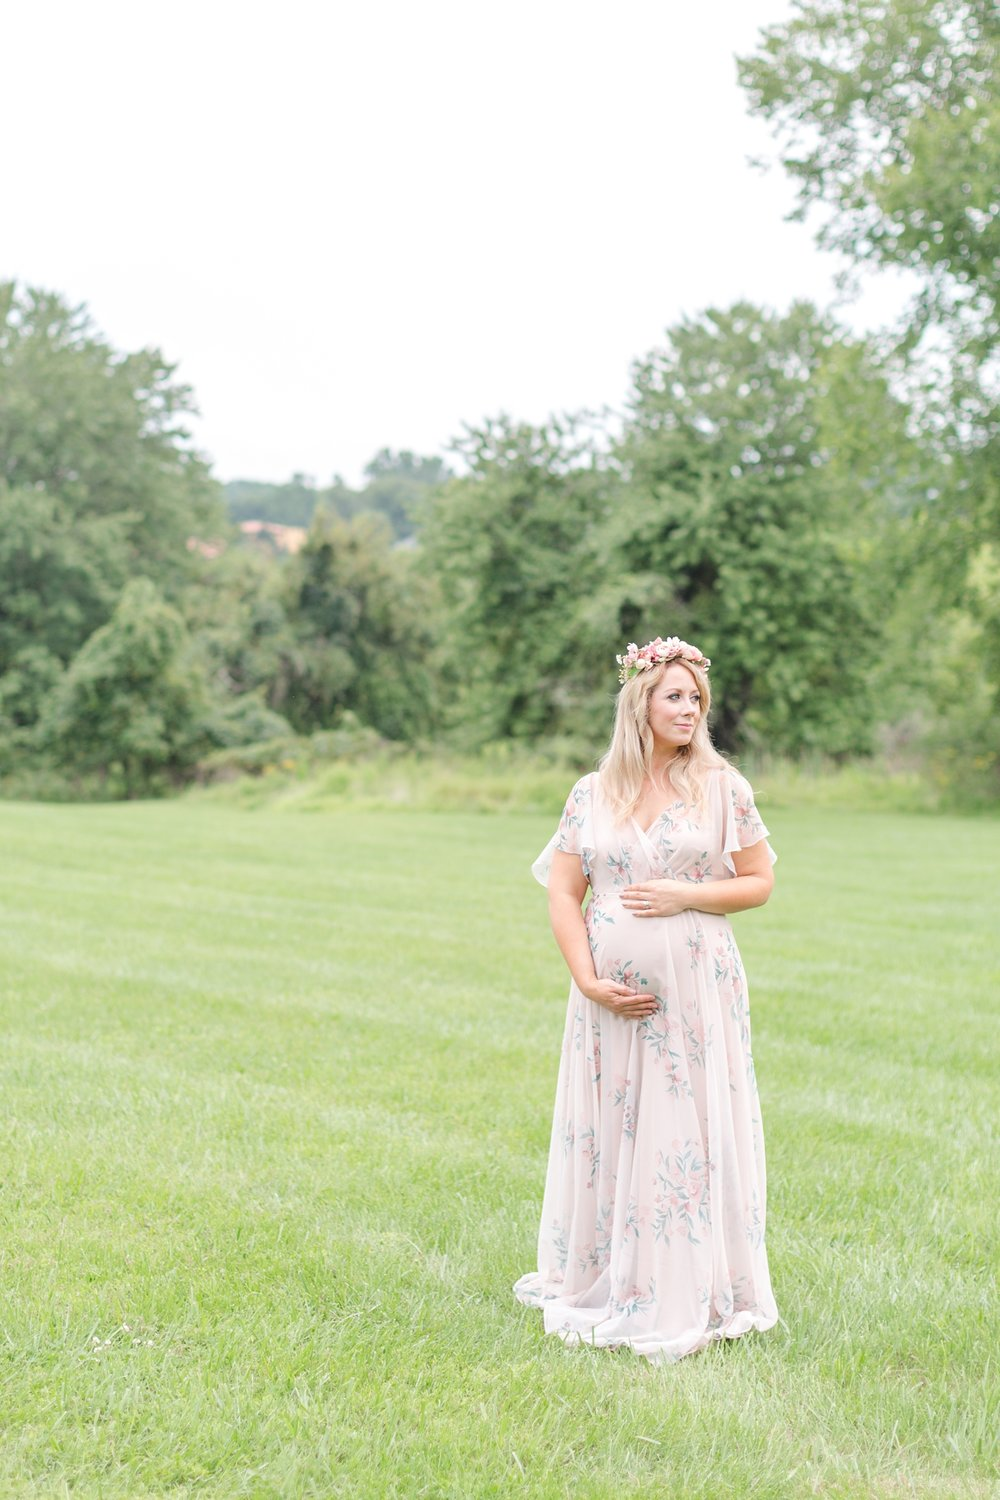 Specketer Maternity-6_baltimore-maryland-maternity-milkbath-anna-grace-photography-photo.jpg